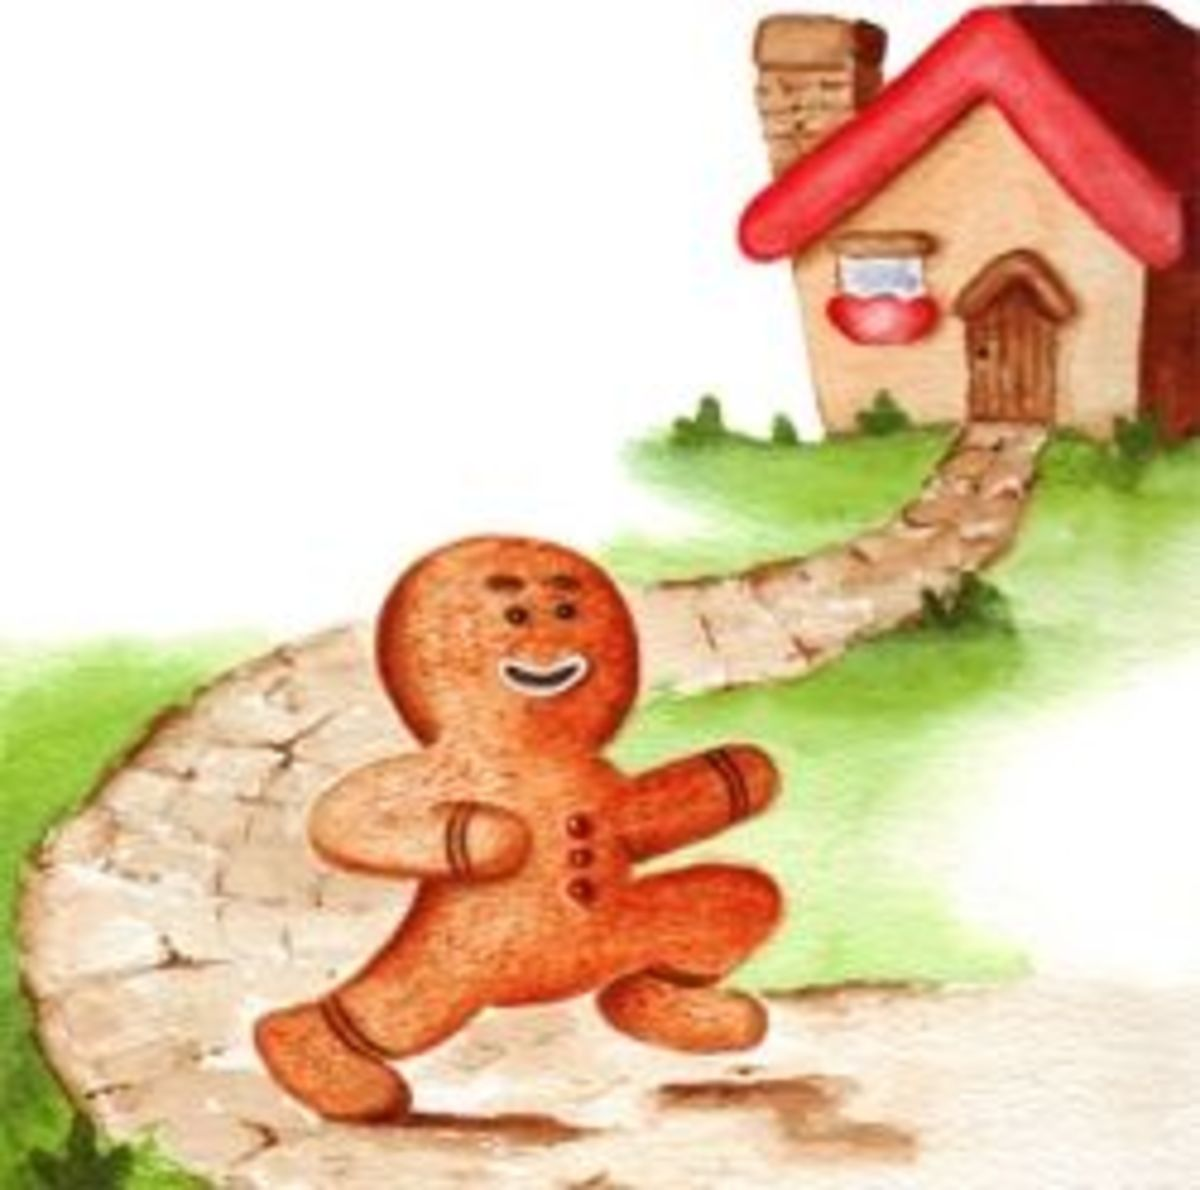 Gingerbread Man Image Credit: http://playgroupsandplaydates.blogspot.com/2010/11/gingerbread-man-playdate.html